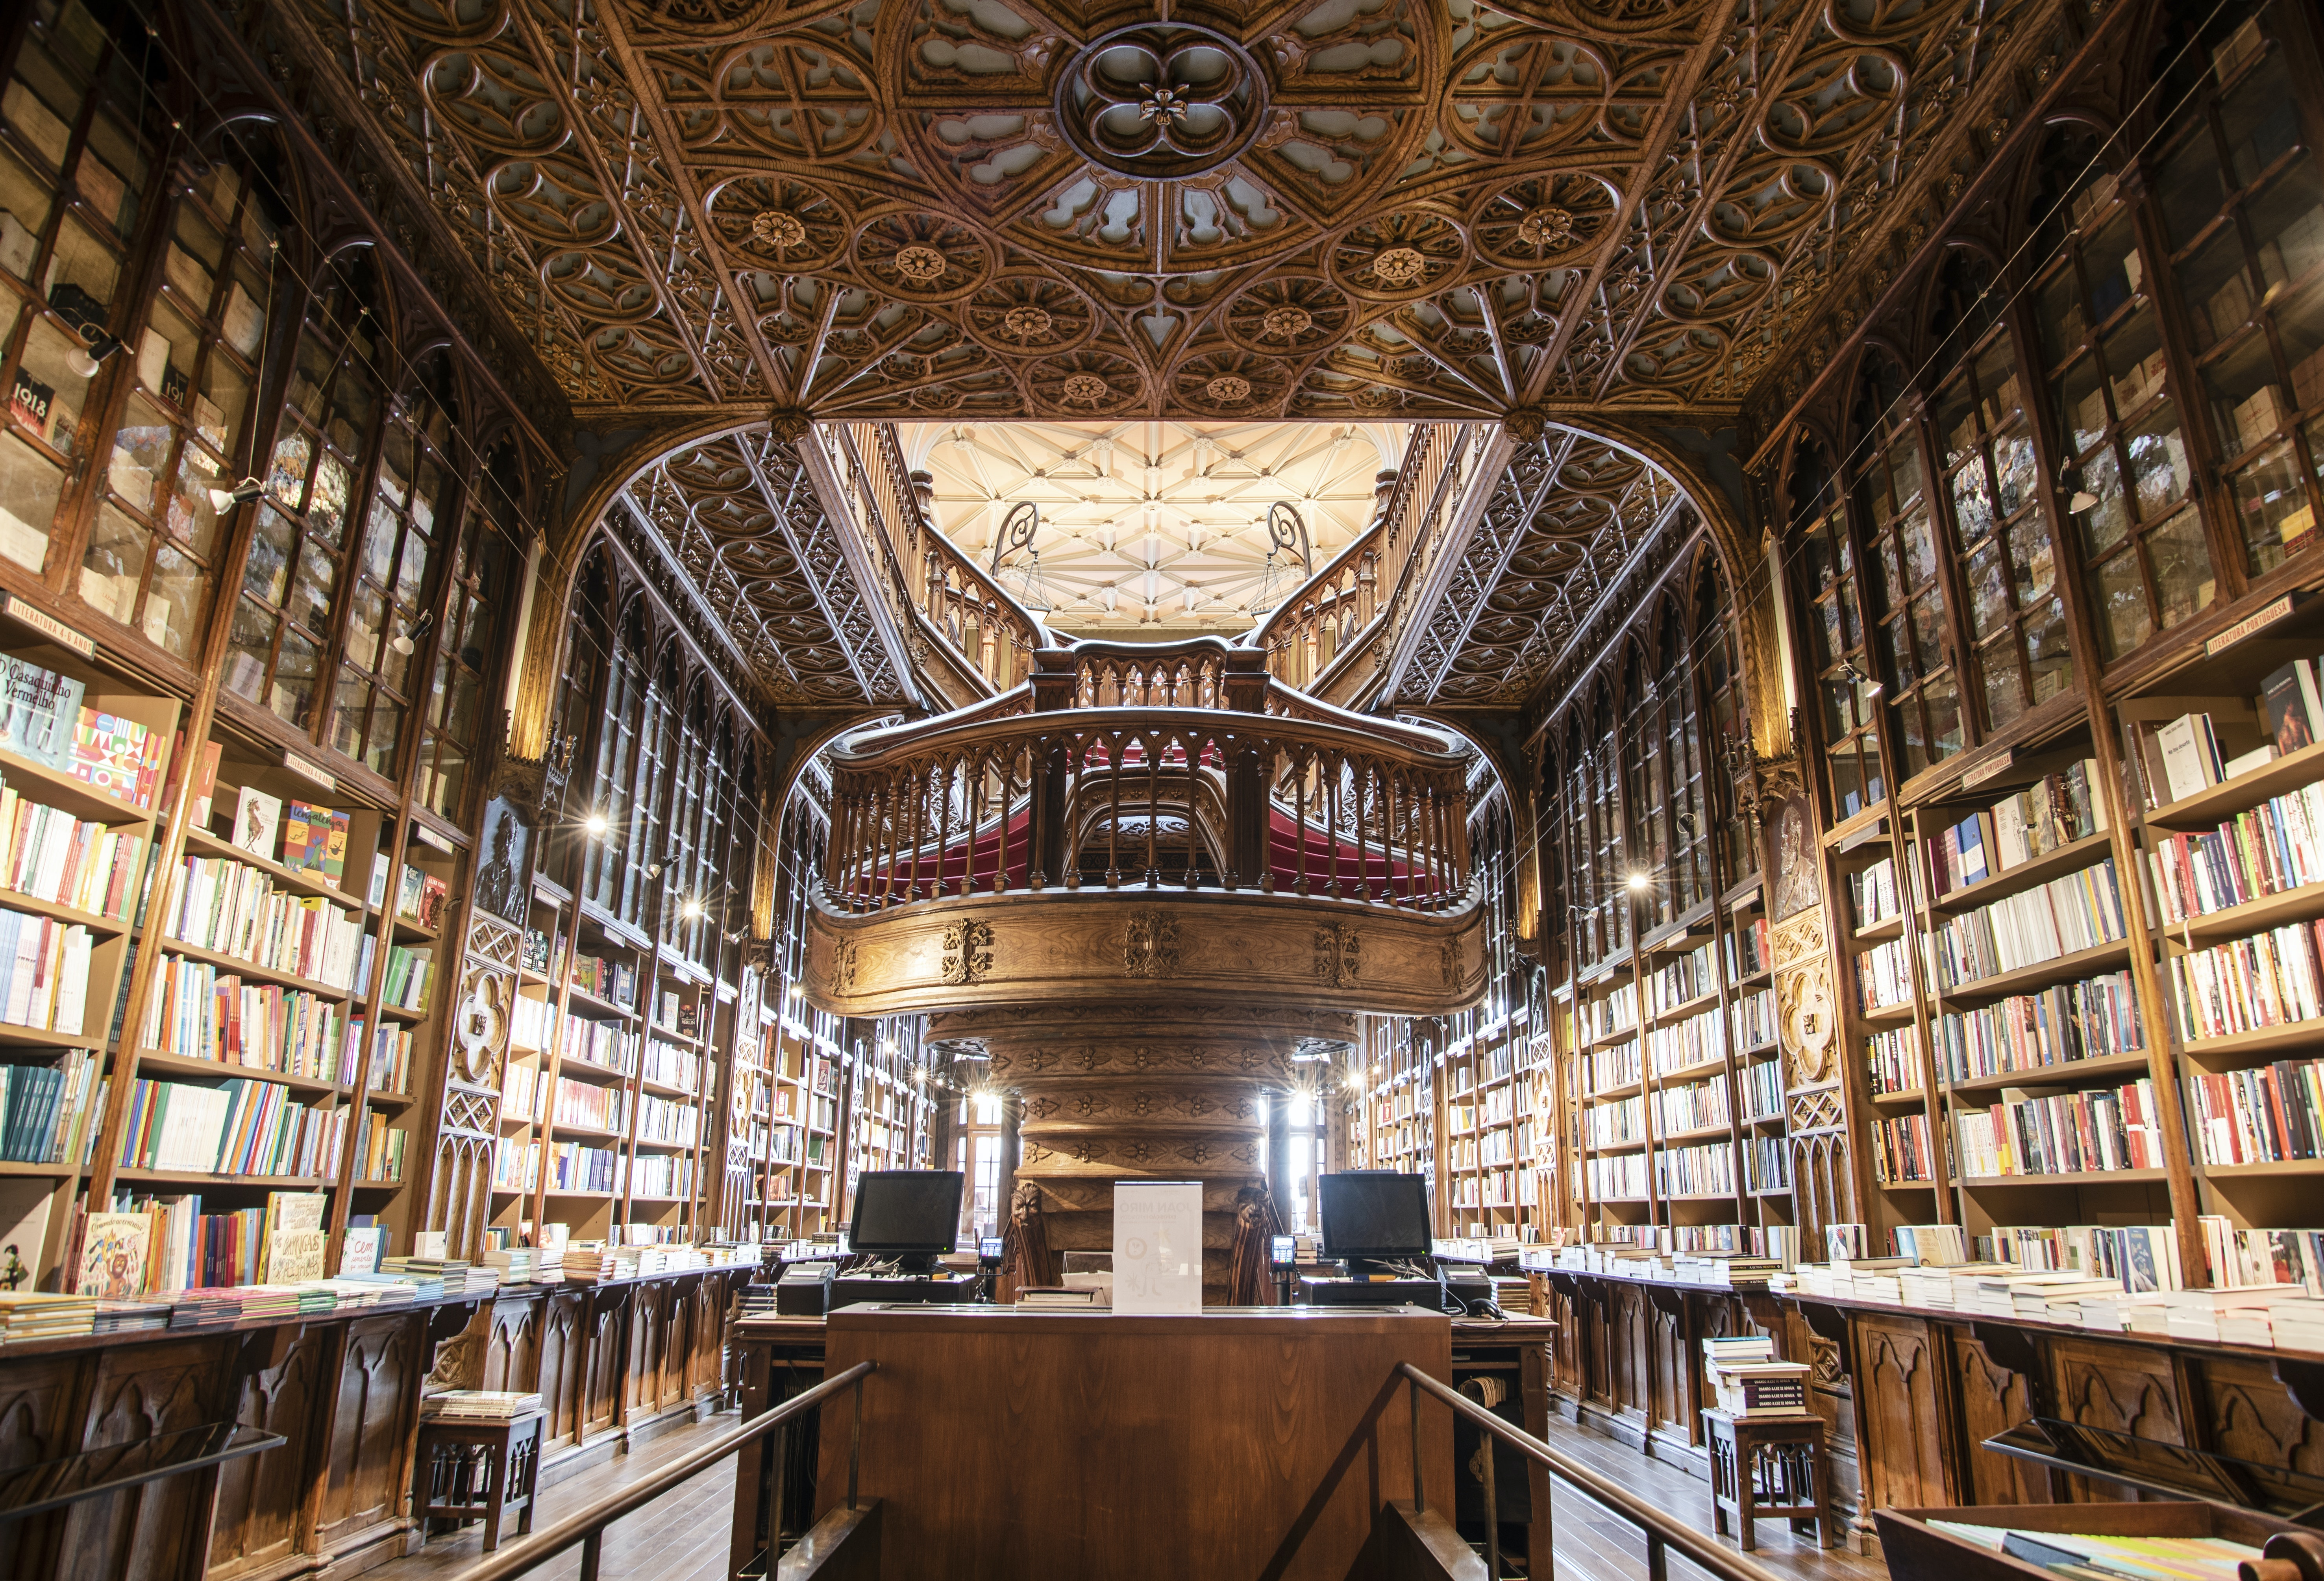 Wonderful Library Images · · Free Stock